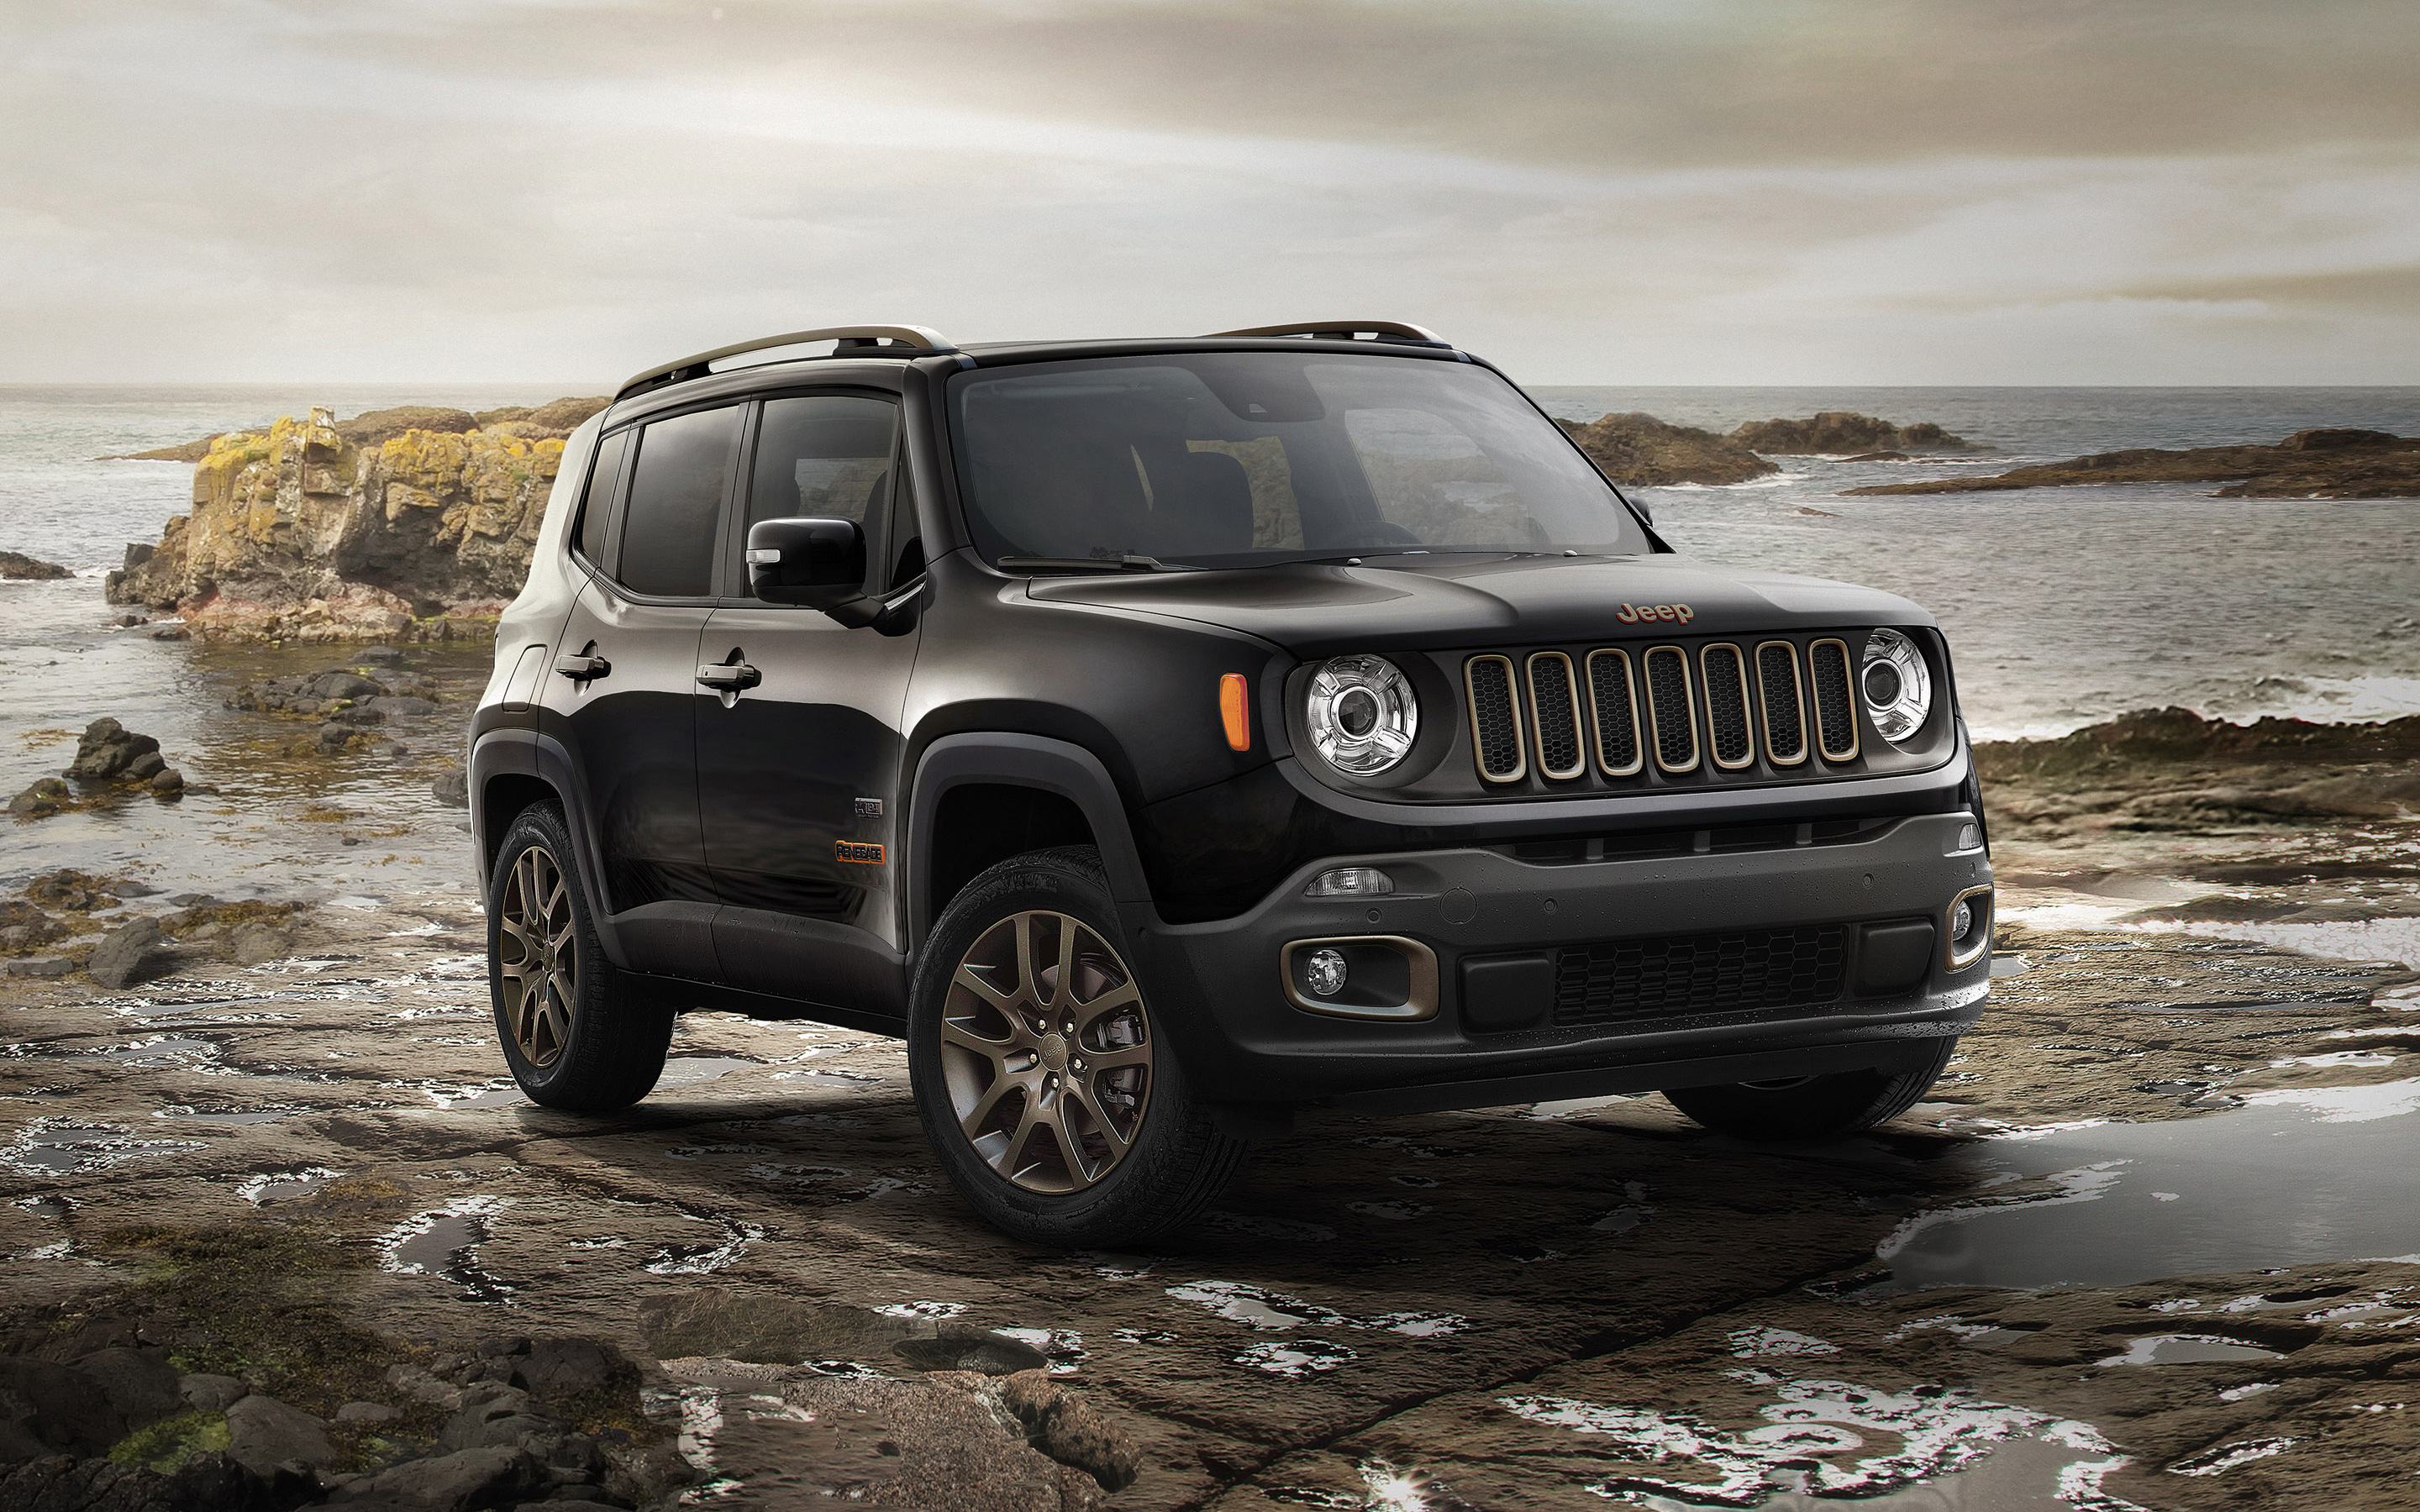 2016 jeep renegade 75th anniversary wallpaper hd car wallpapers id 6418. Black Bedroom Furniture Sets. Home Design Ideas